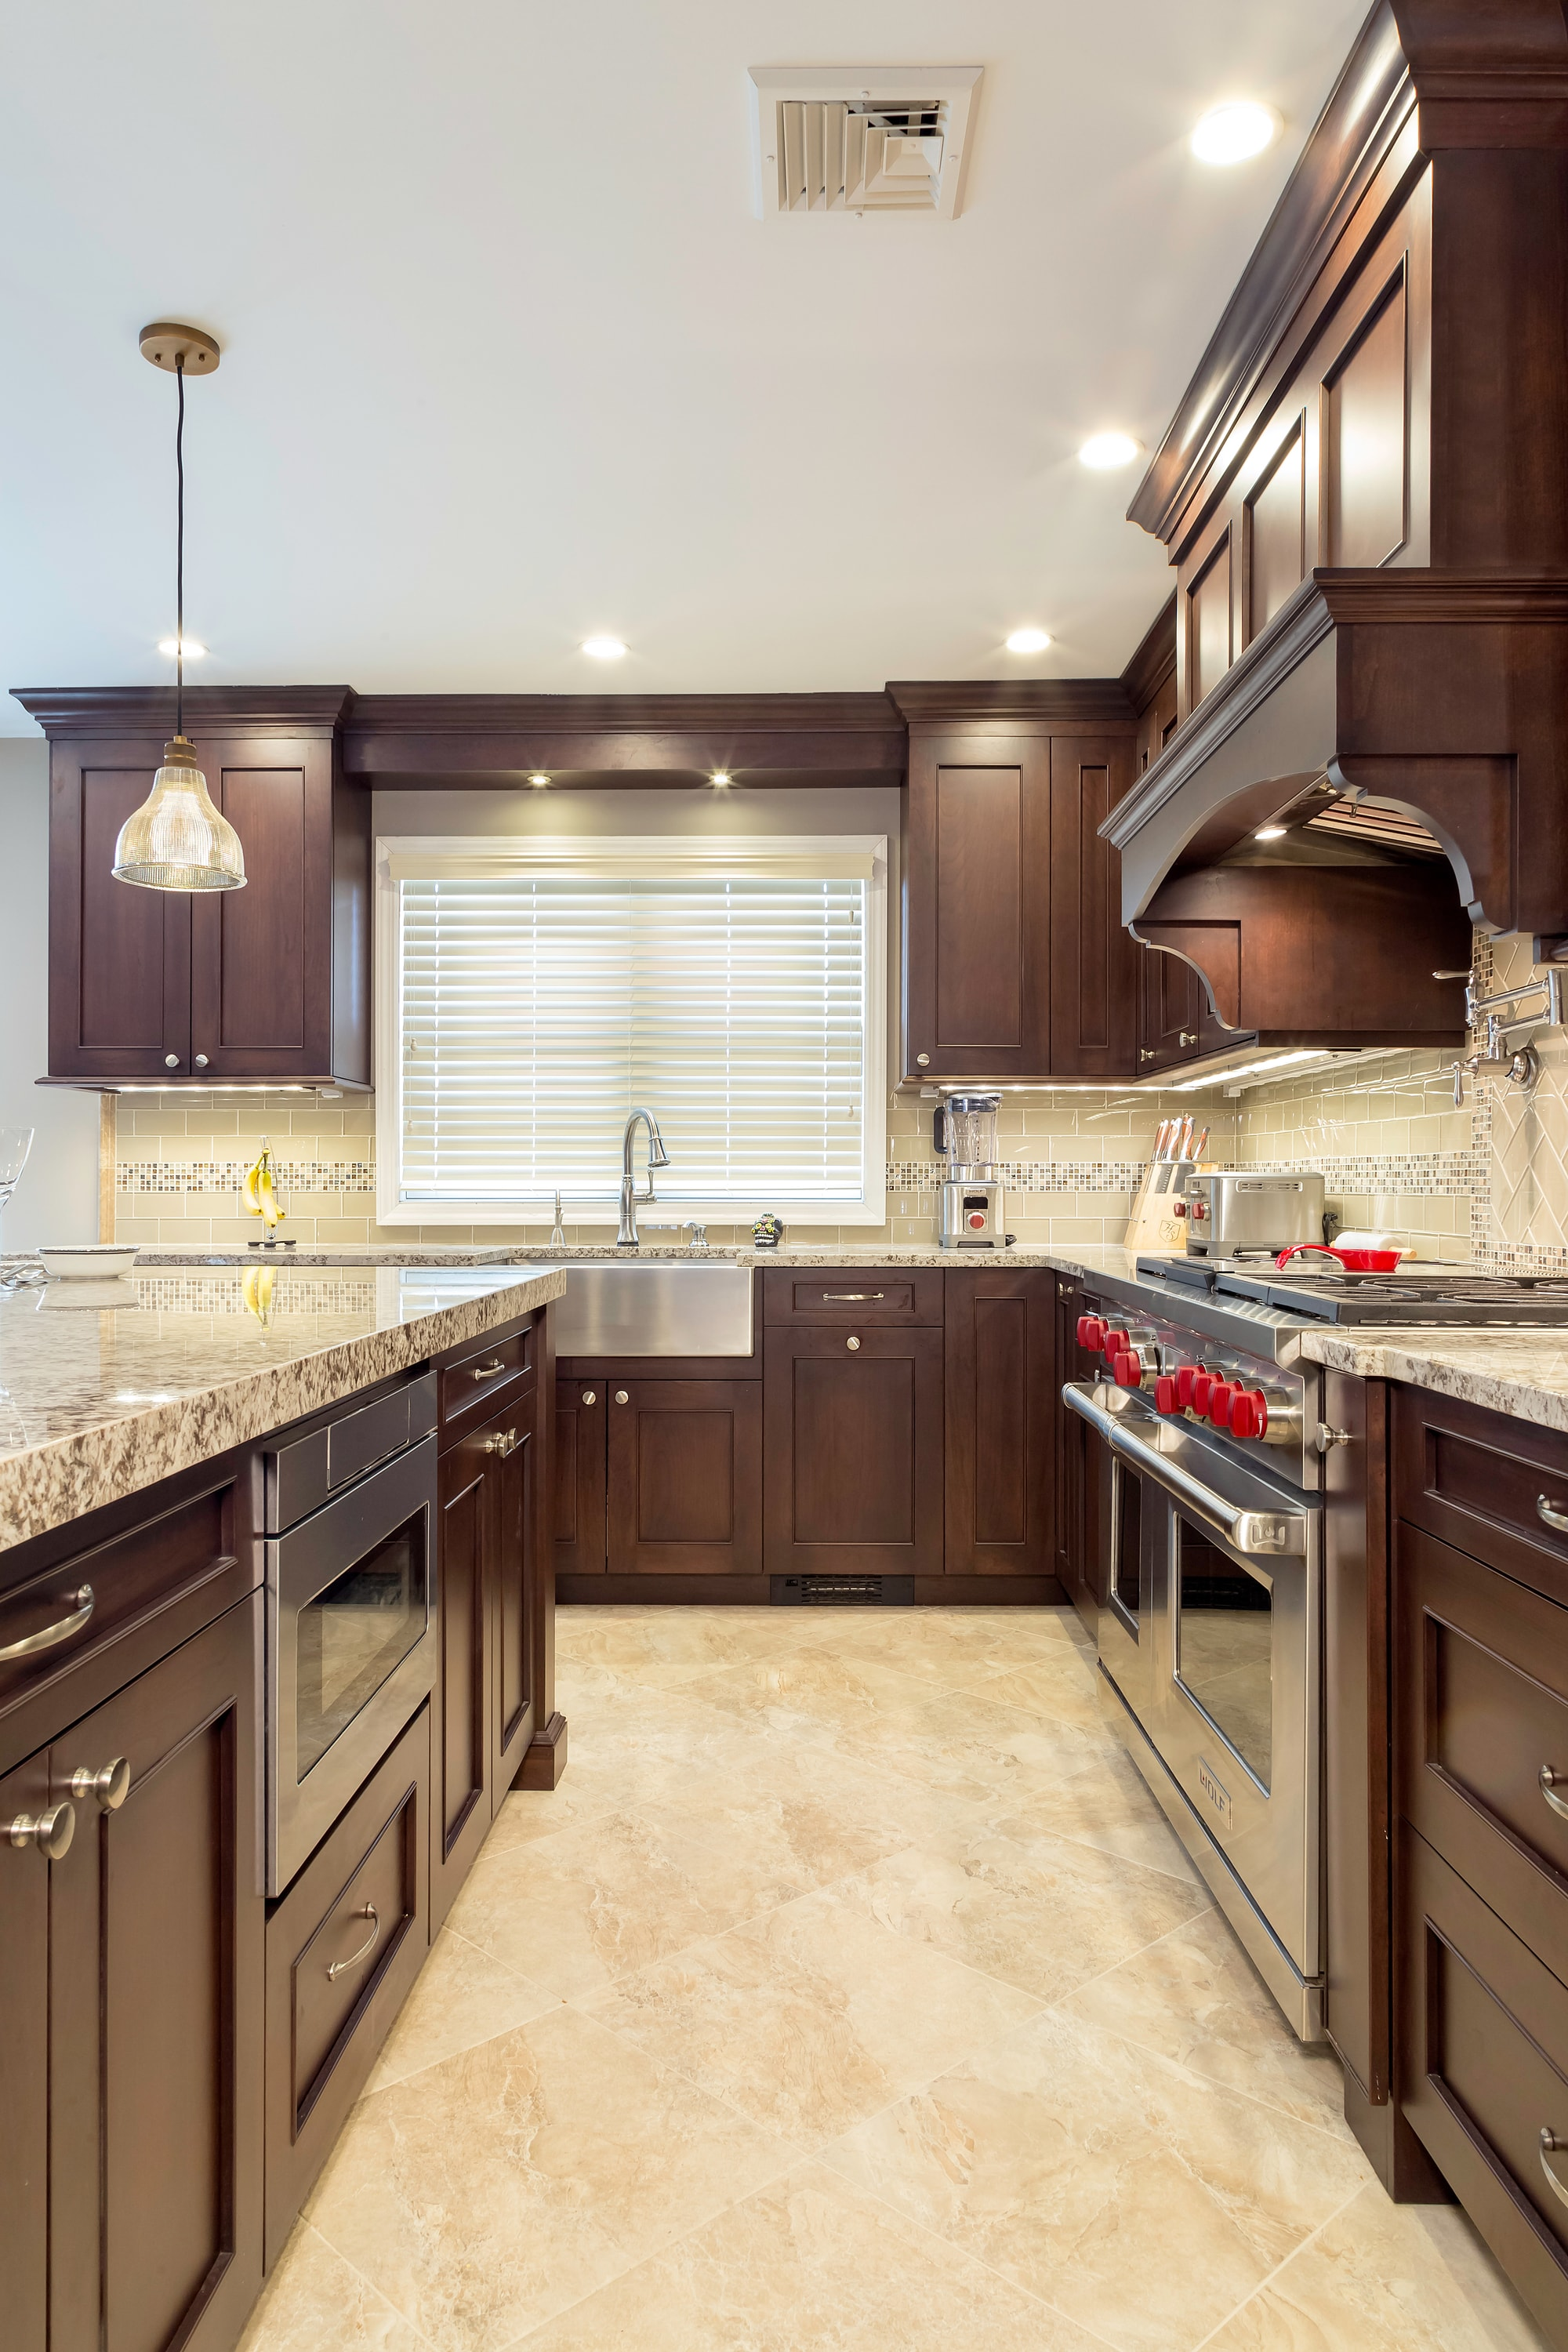 Traditional style kitchen with wooden drawer and cabinets